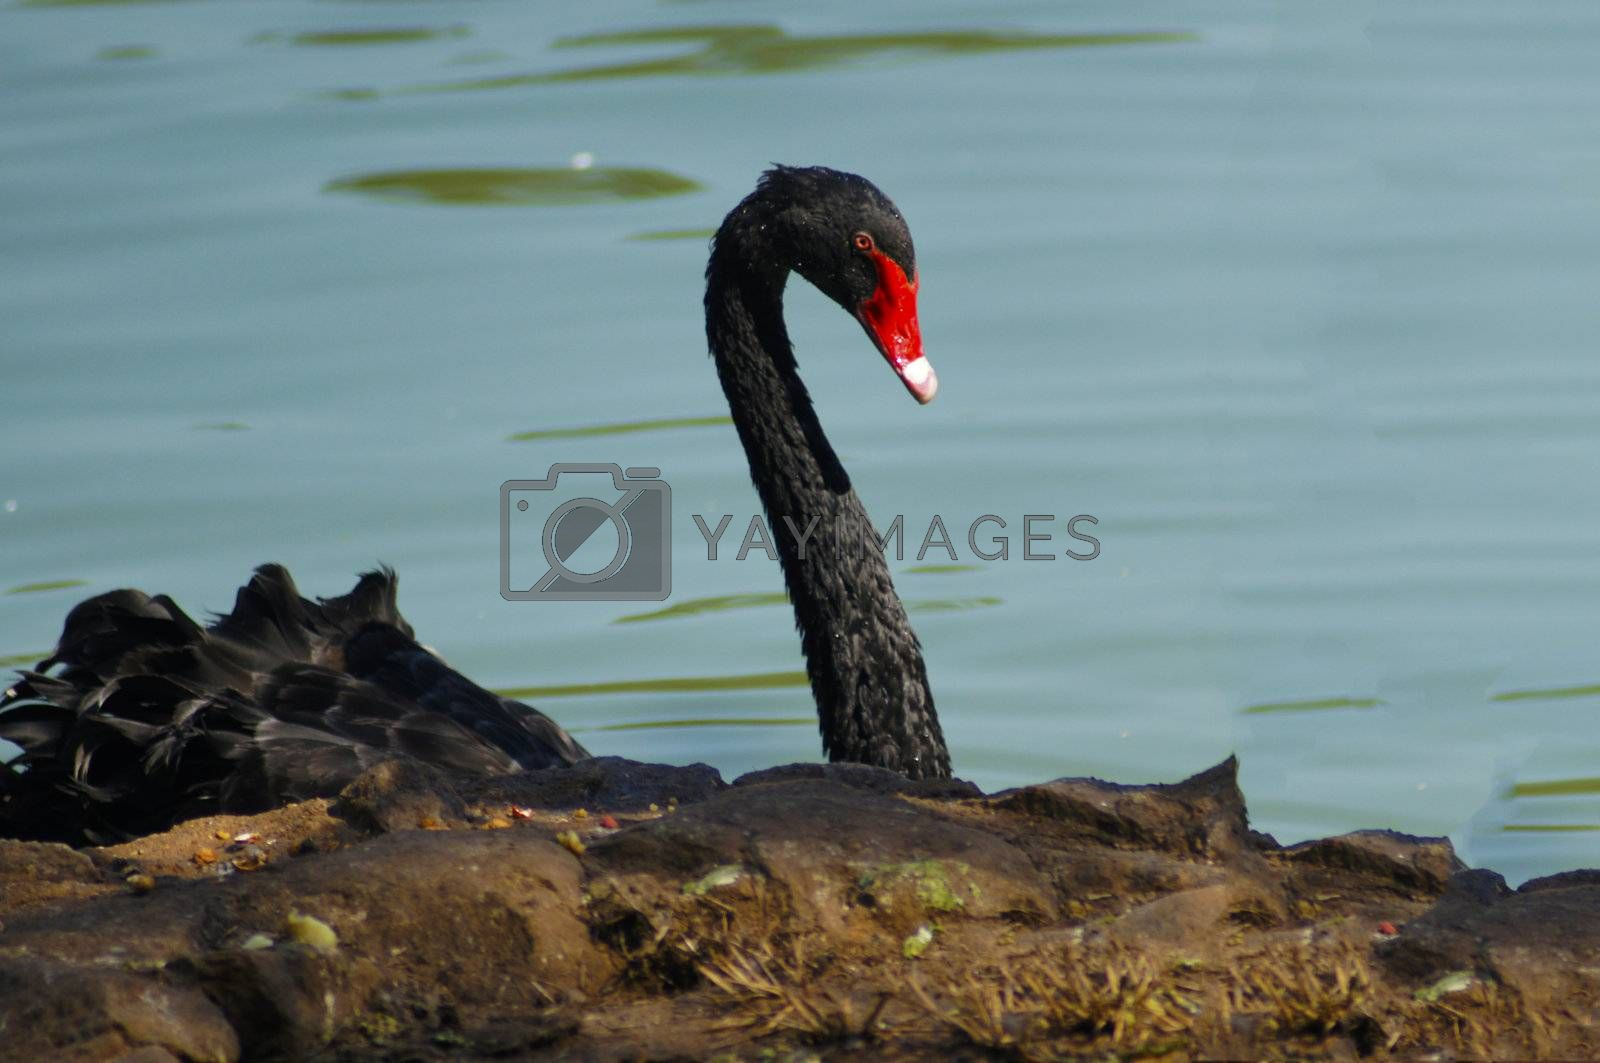 With one year of age get their adult coloring, and its neck fully black contrasts beautifully with the red base of its beak and body entirely black